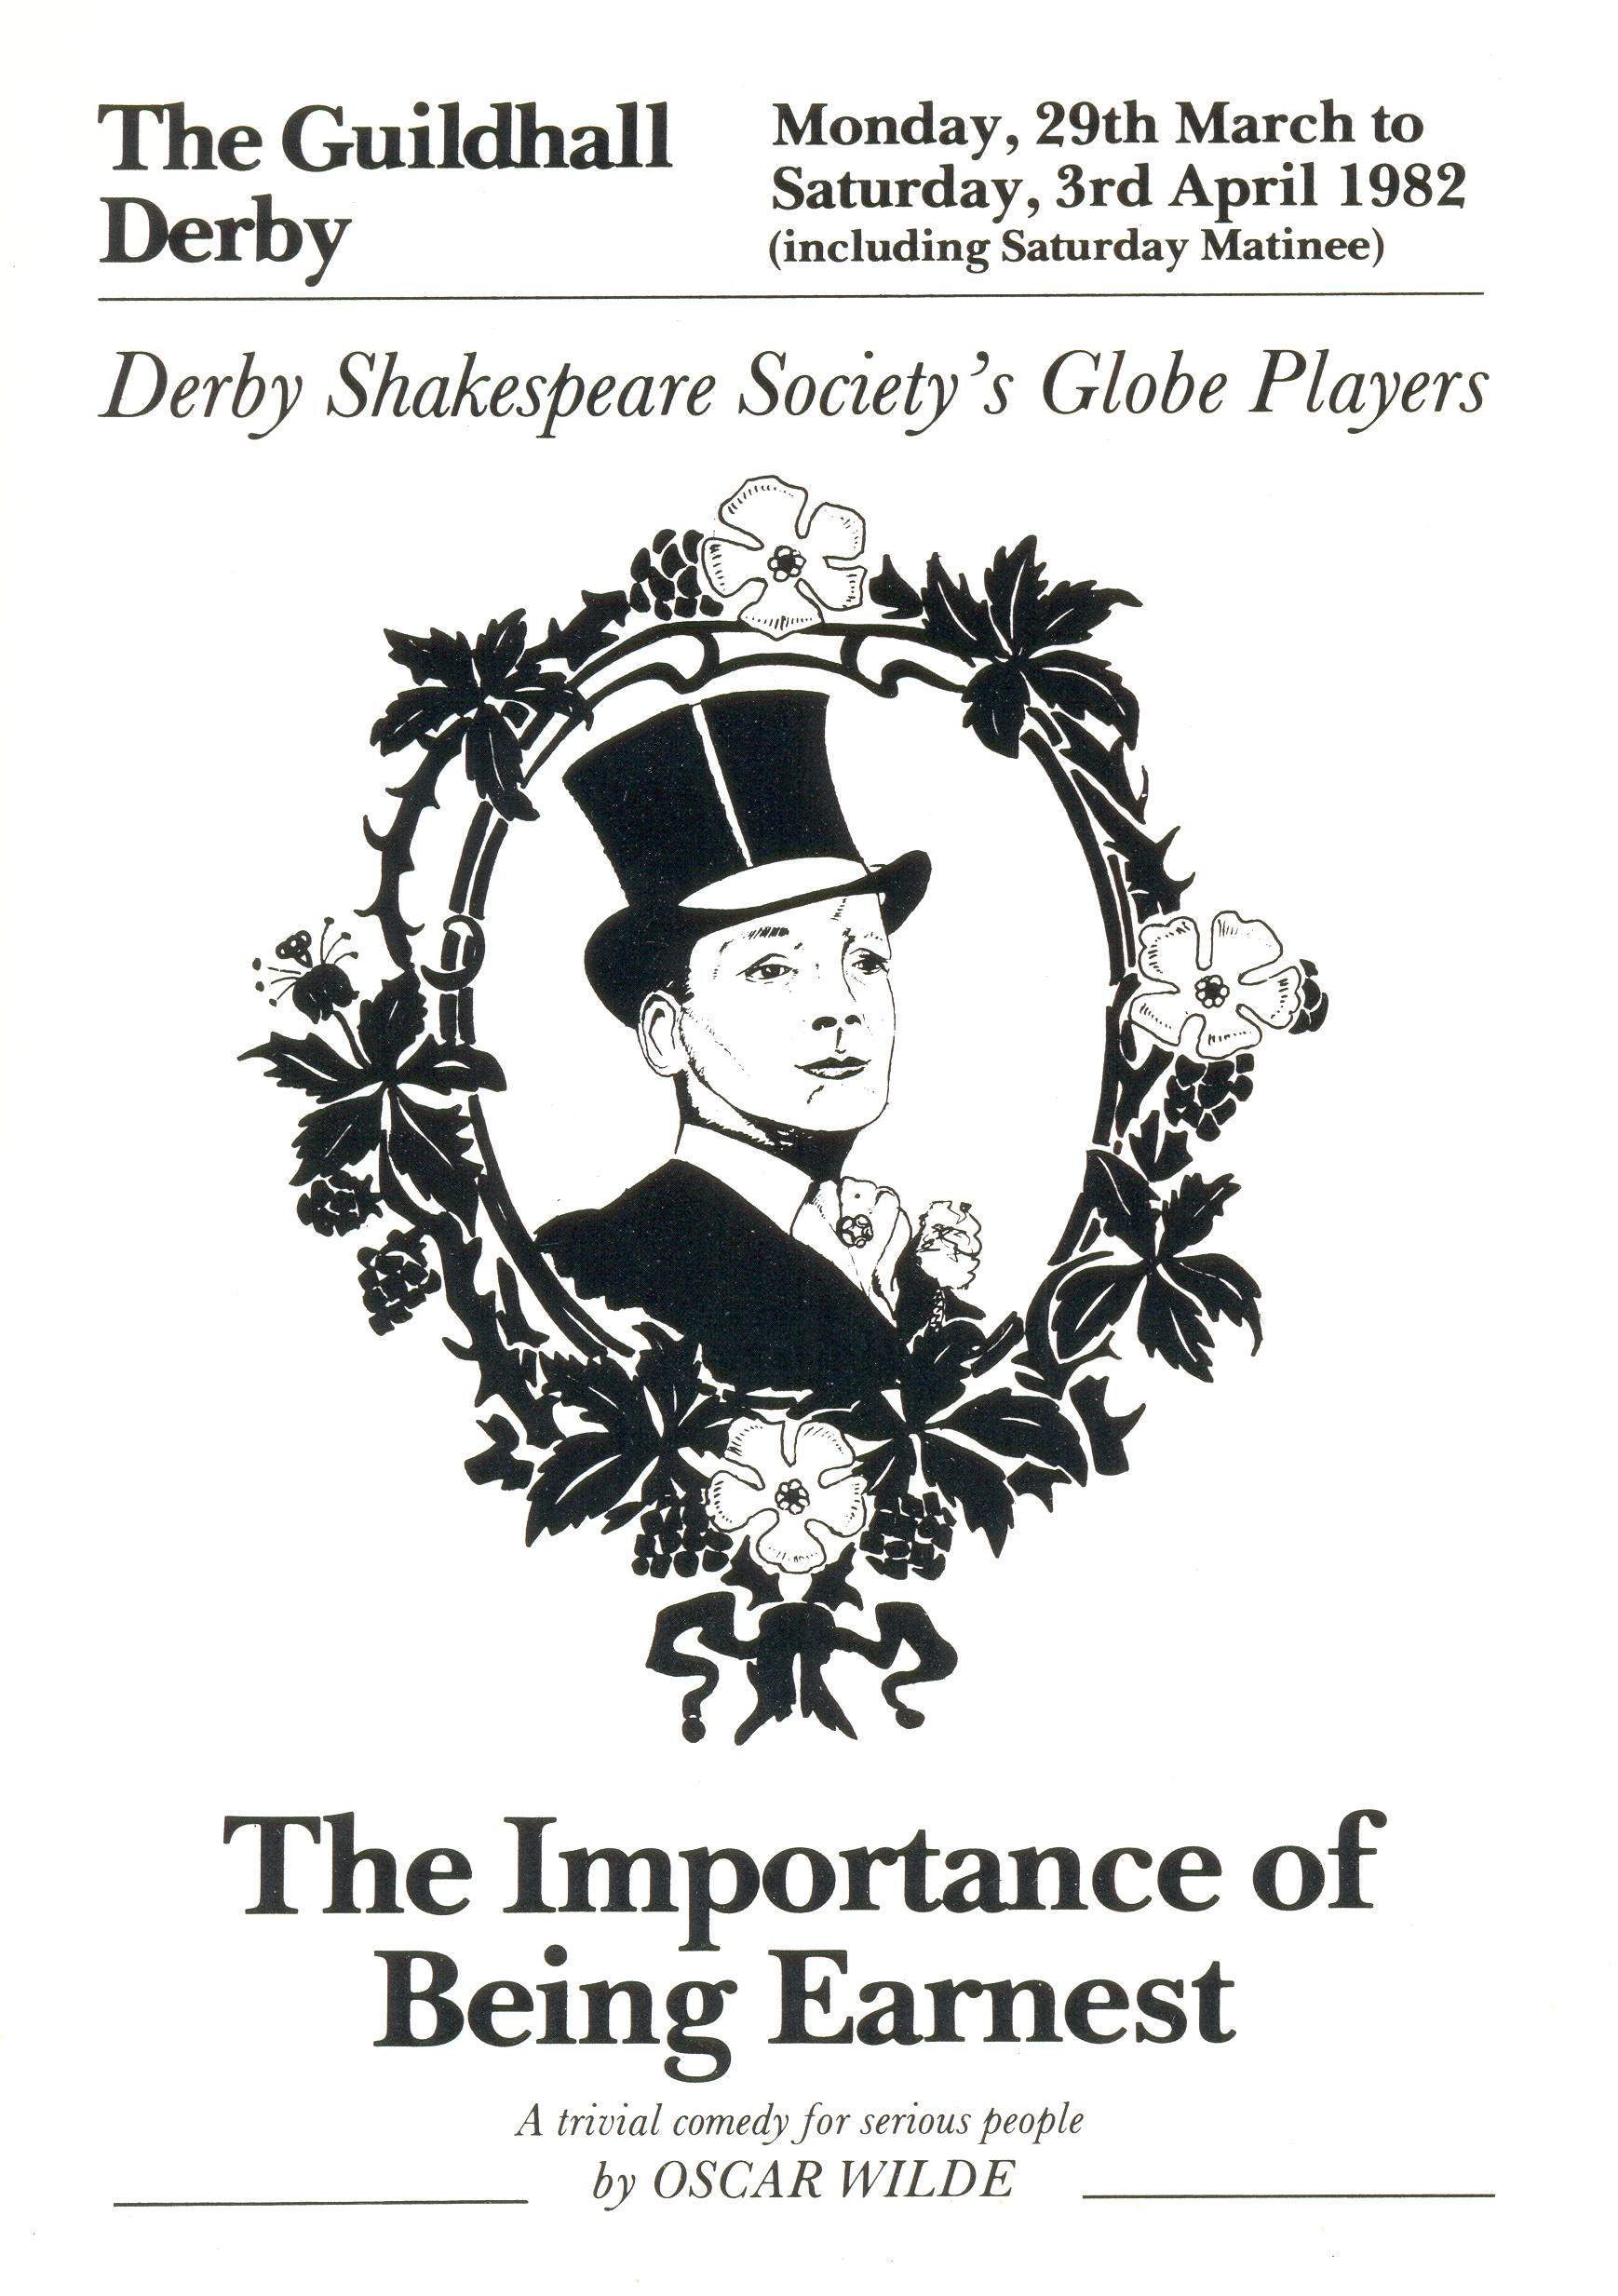 'The Importance Of Being Earnest' 1982